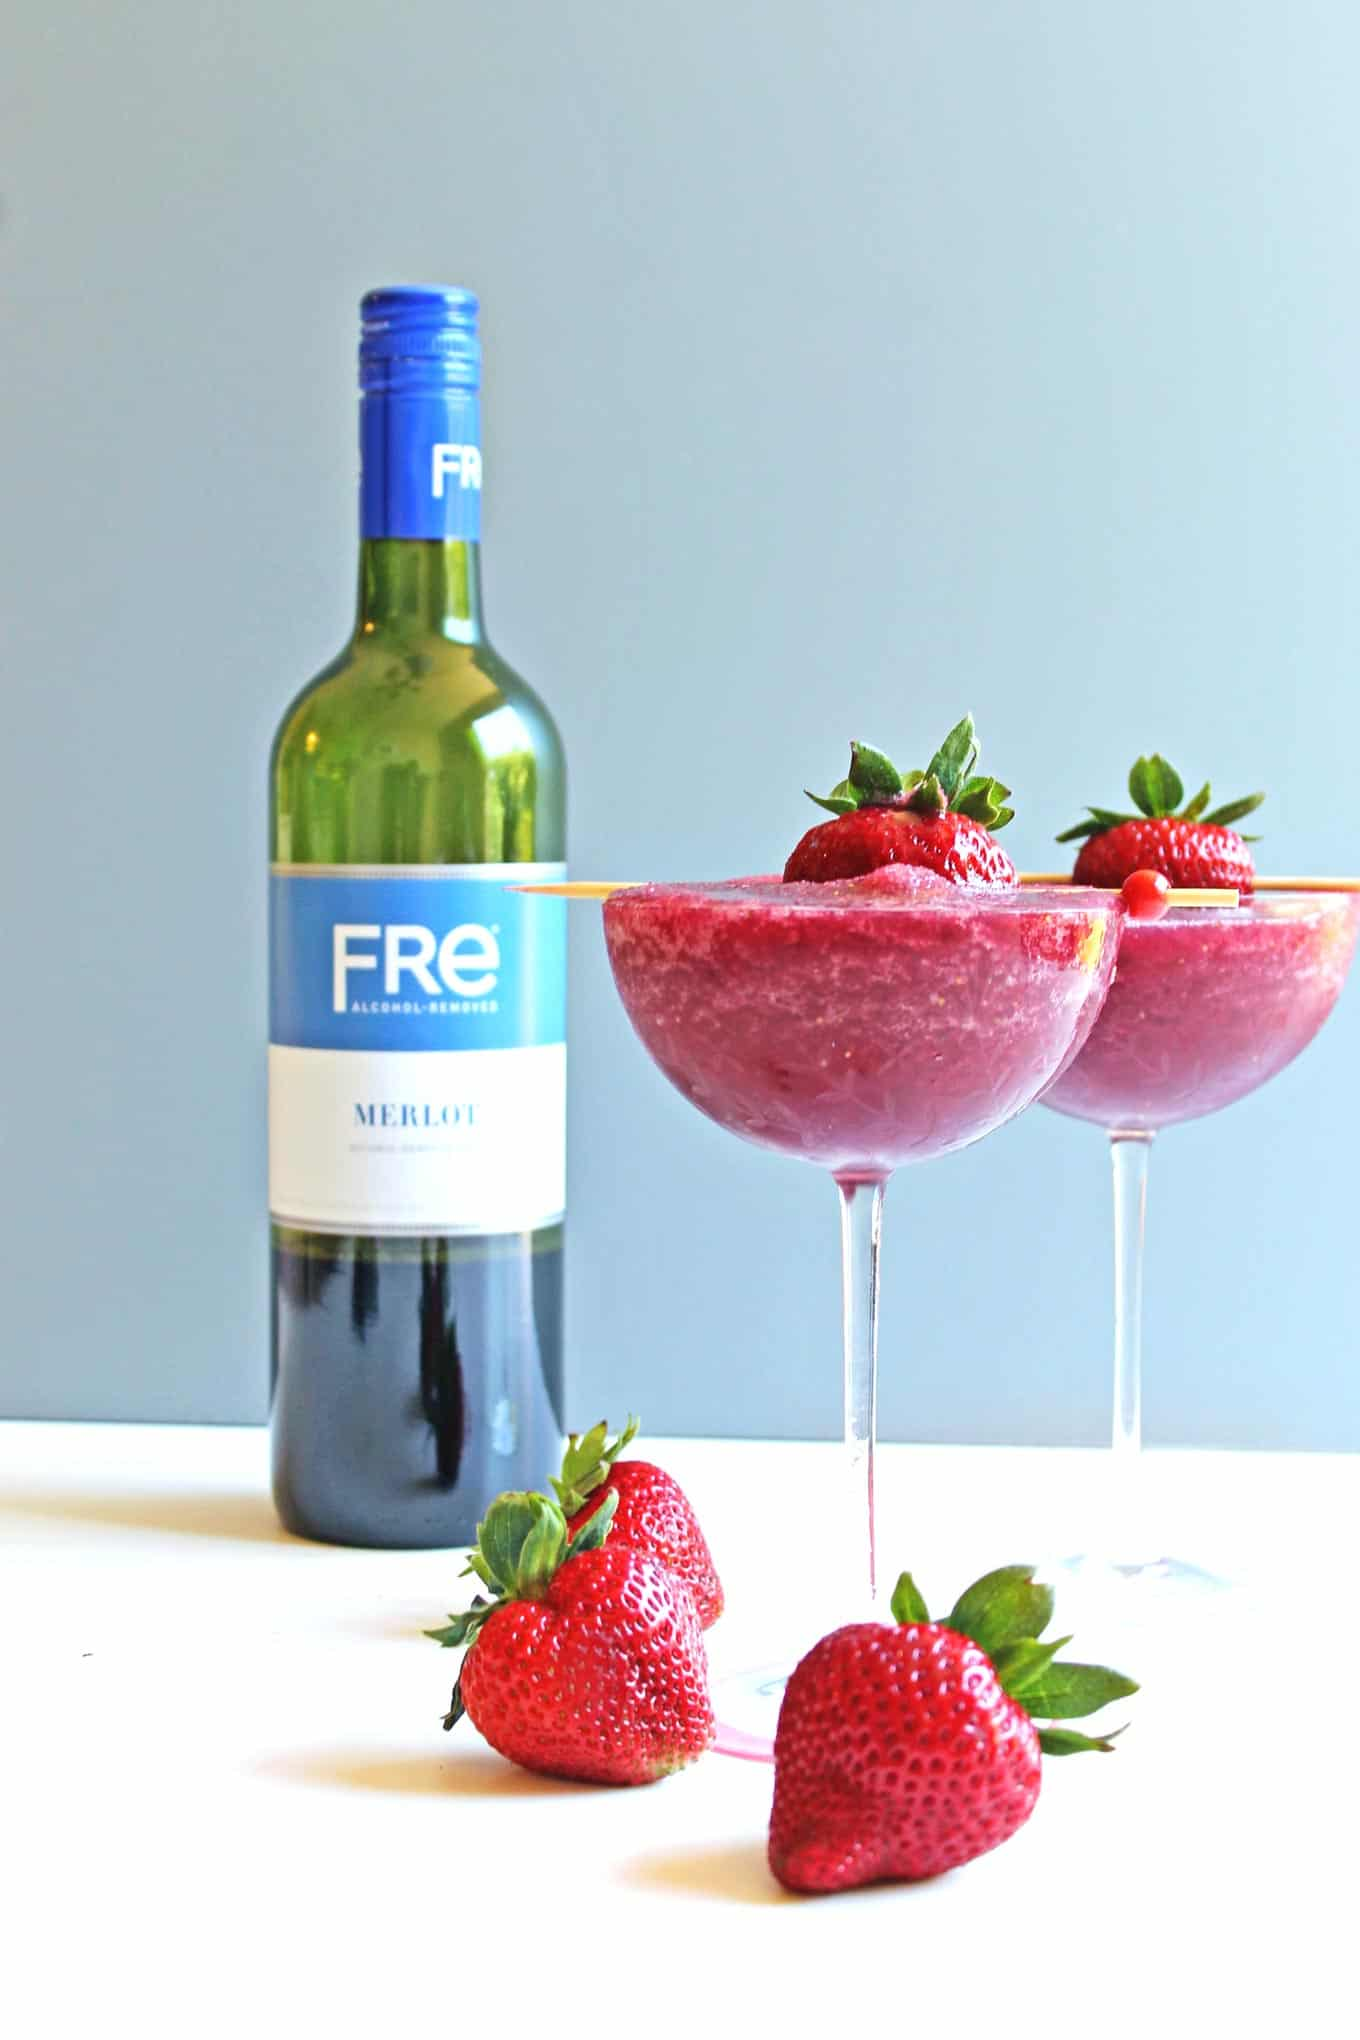 Strawberry merlot slushy mocktail recipe! Yes, you CAN enjoy wine during your pregnancy! This frozen mocktail is a blend of FRE alcohol removed wine and delicious strawberries. The perfect treat for pregnant or alcohol free wine lovers!